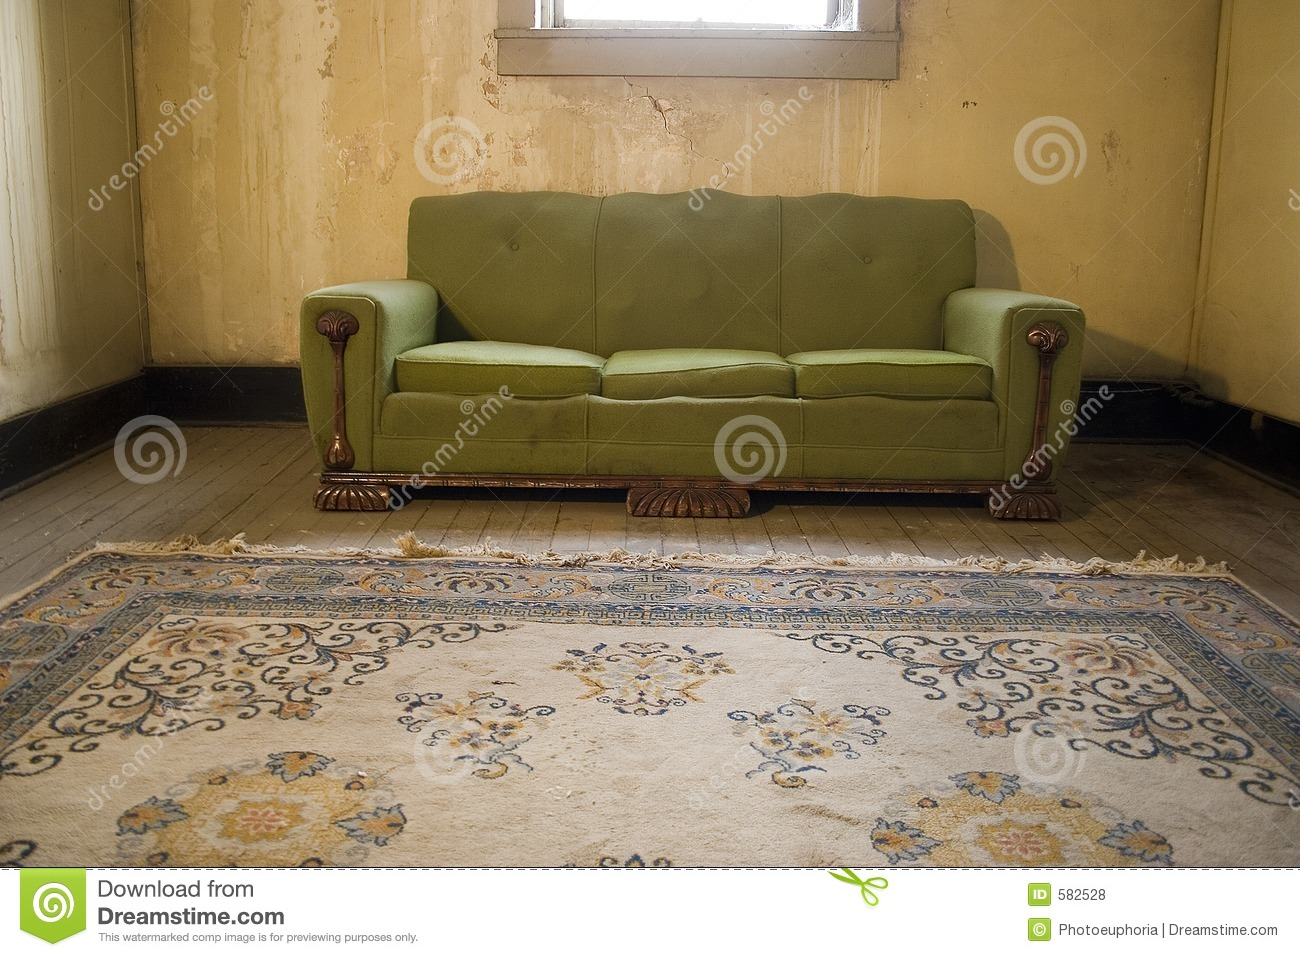 Grunge Apartment Sofa Rug Room Poverty Stock Photo Image